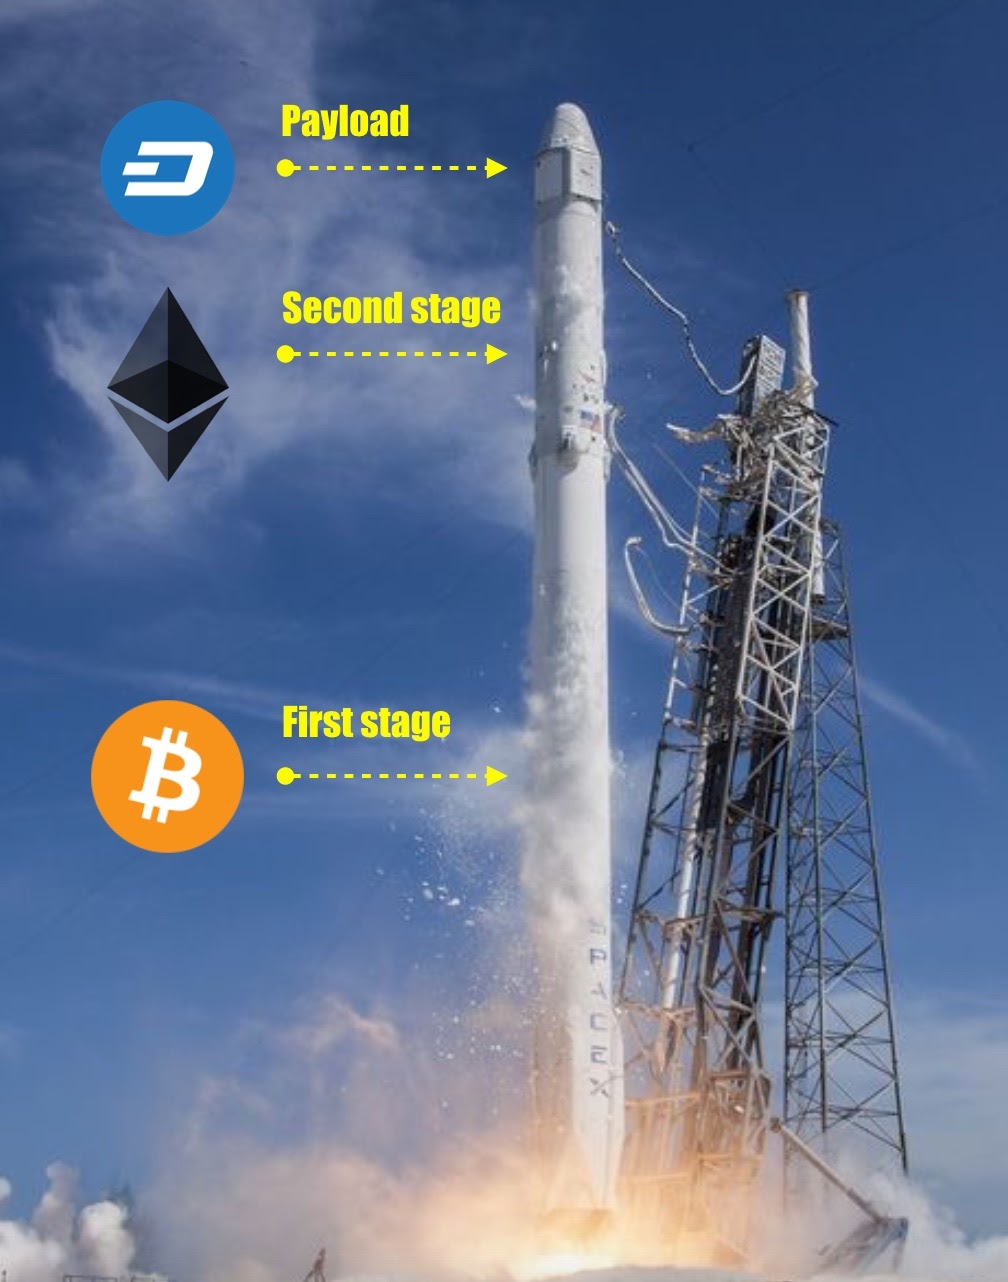 #CRYPTOTRIFECTA cover image